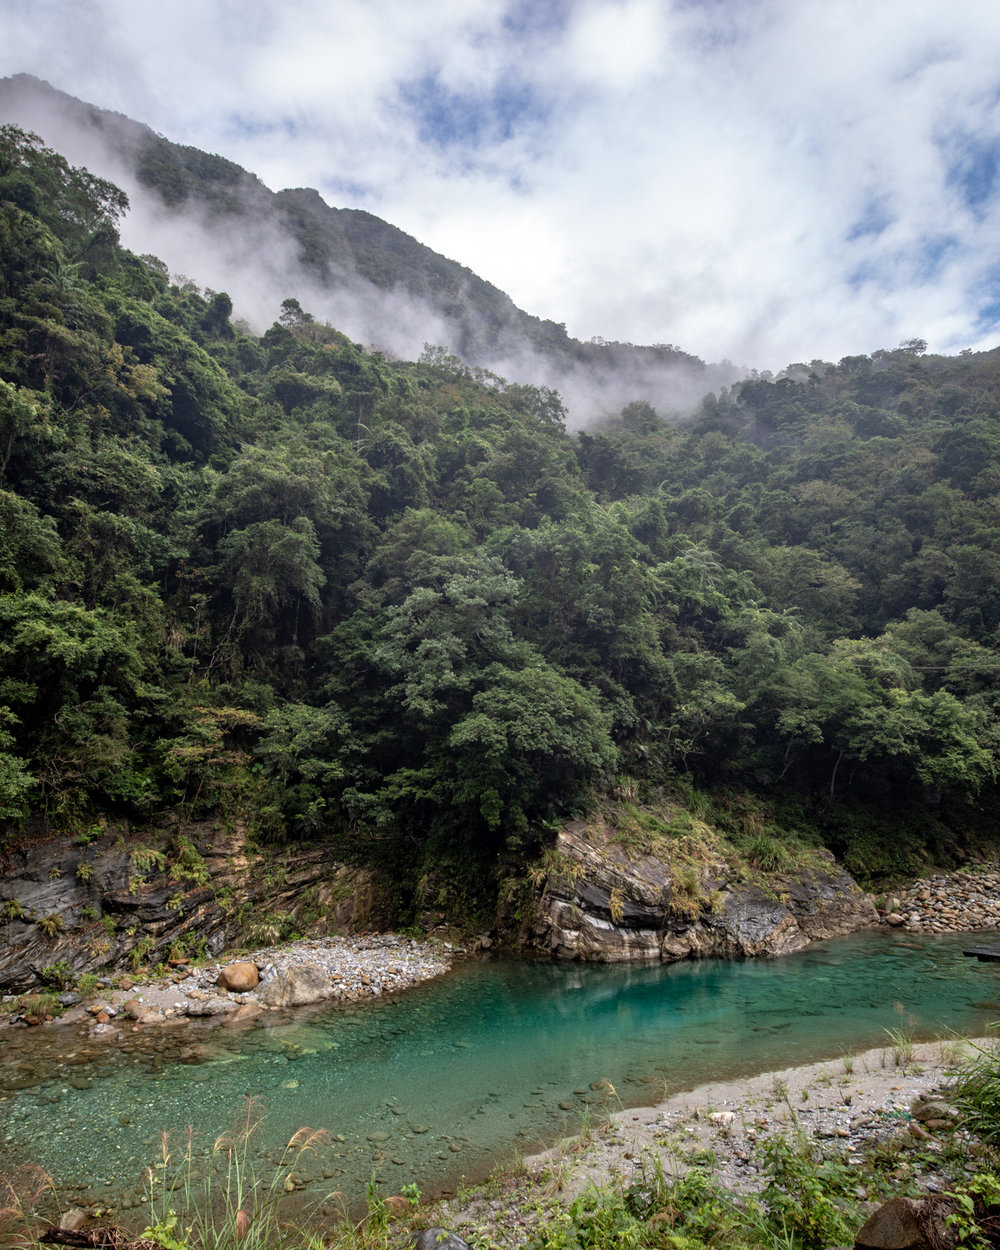 The mountains in the Shakadang Trail, Taroko Gorge